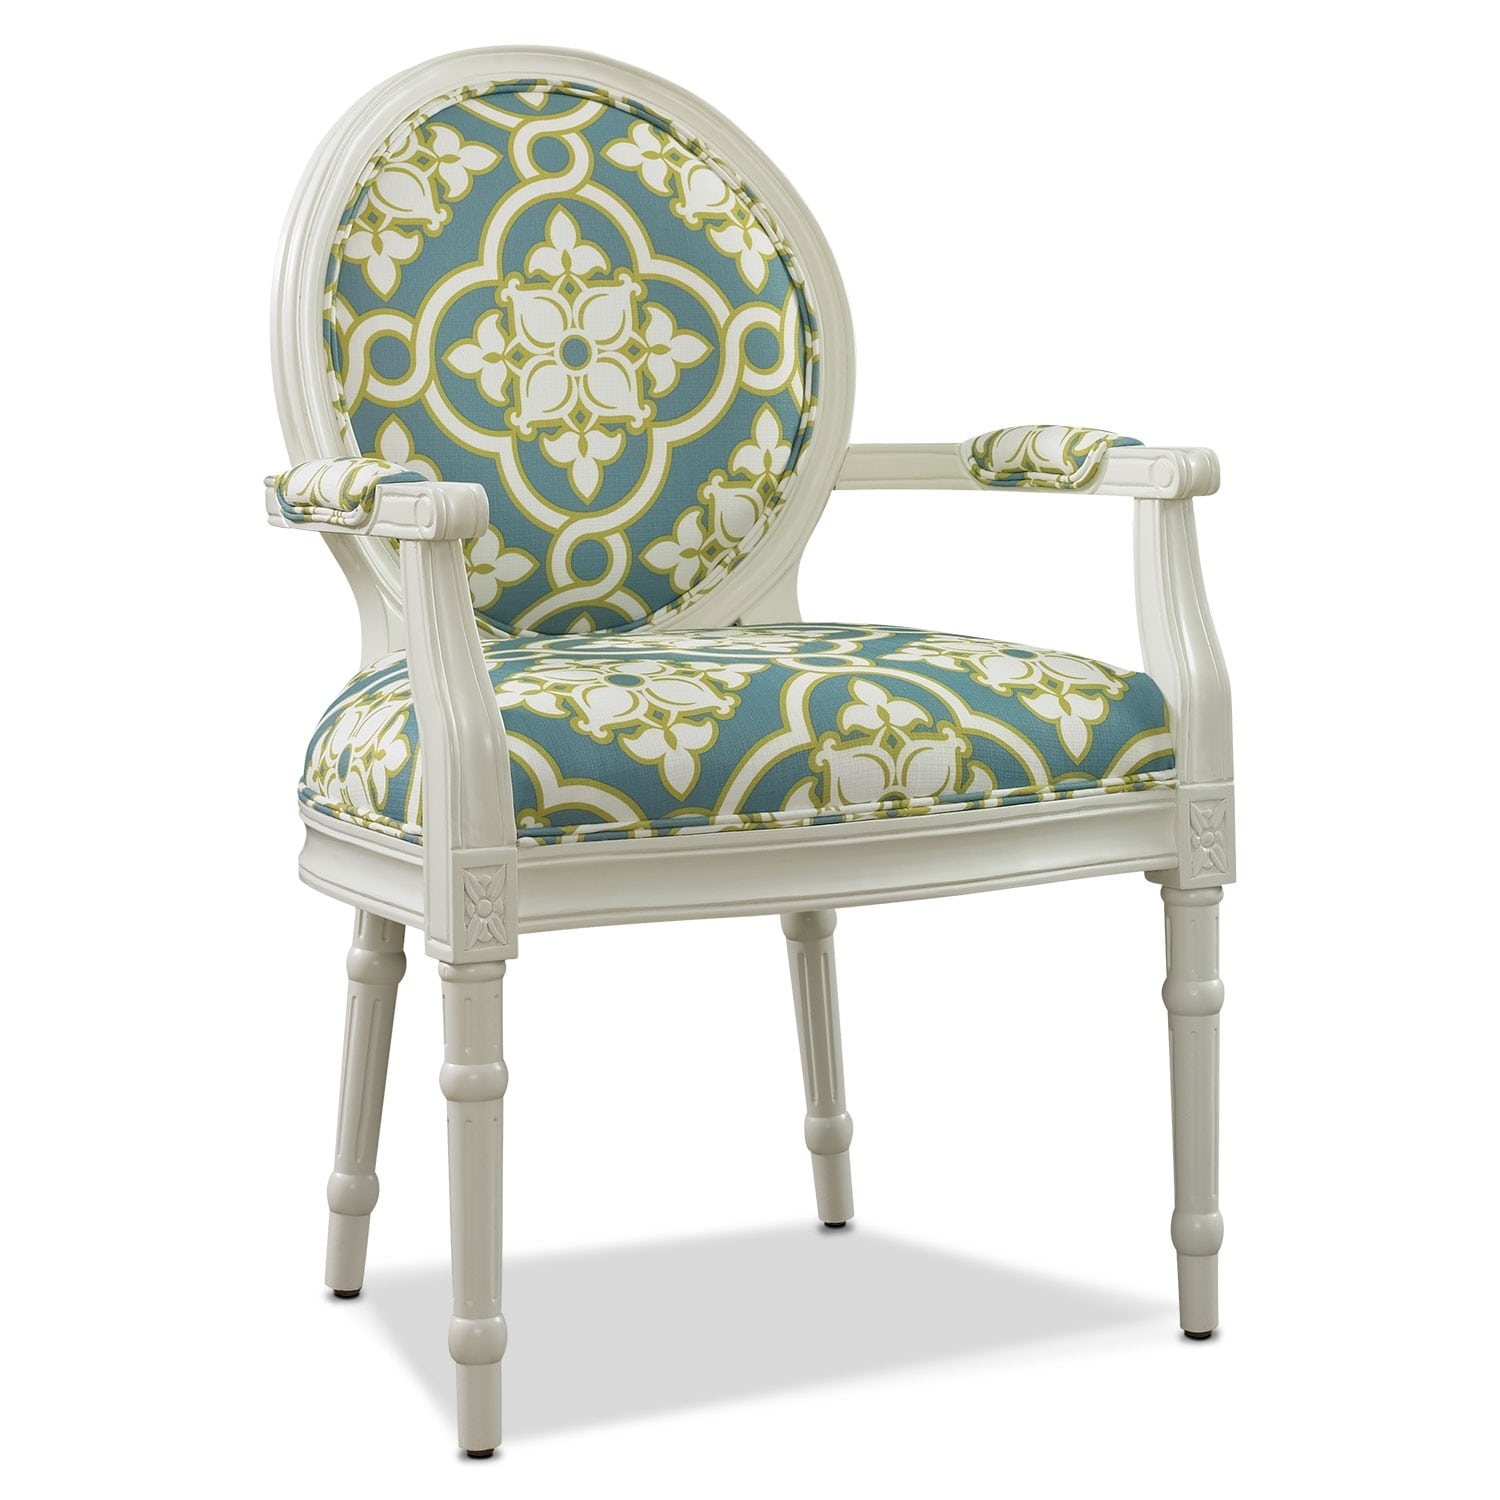 Living Room Furniture - Sable Accent Chair - White and Teal